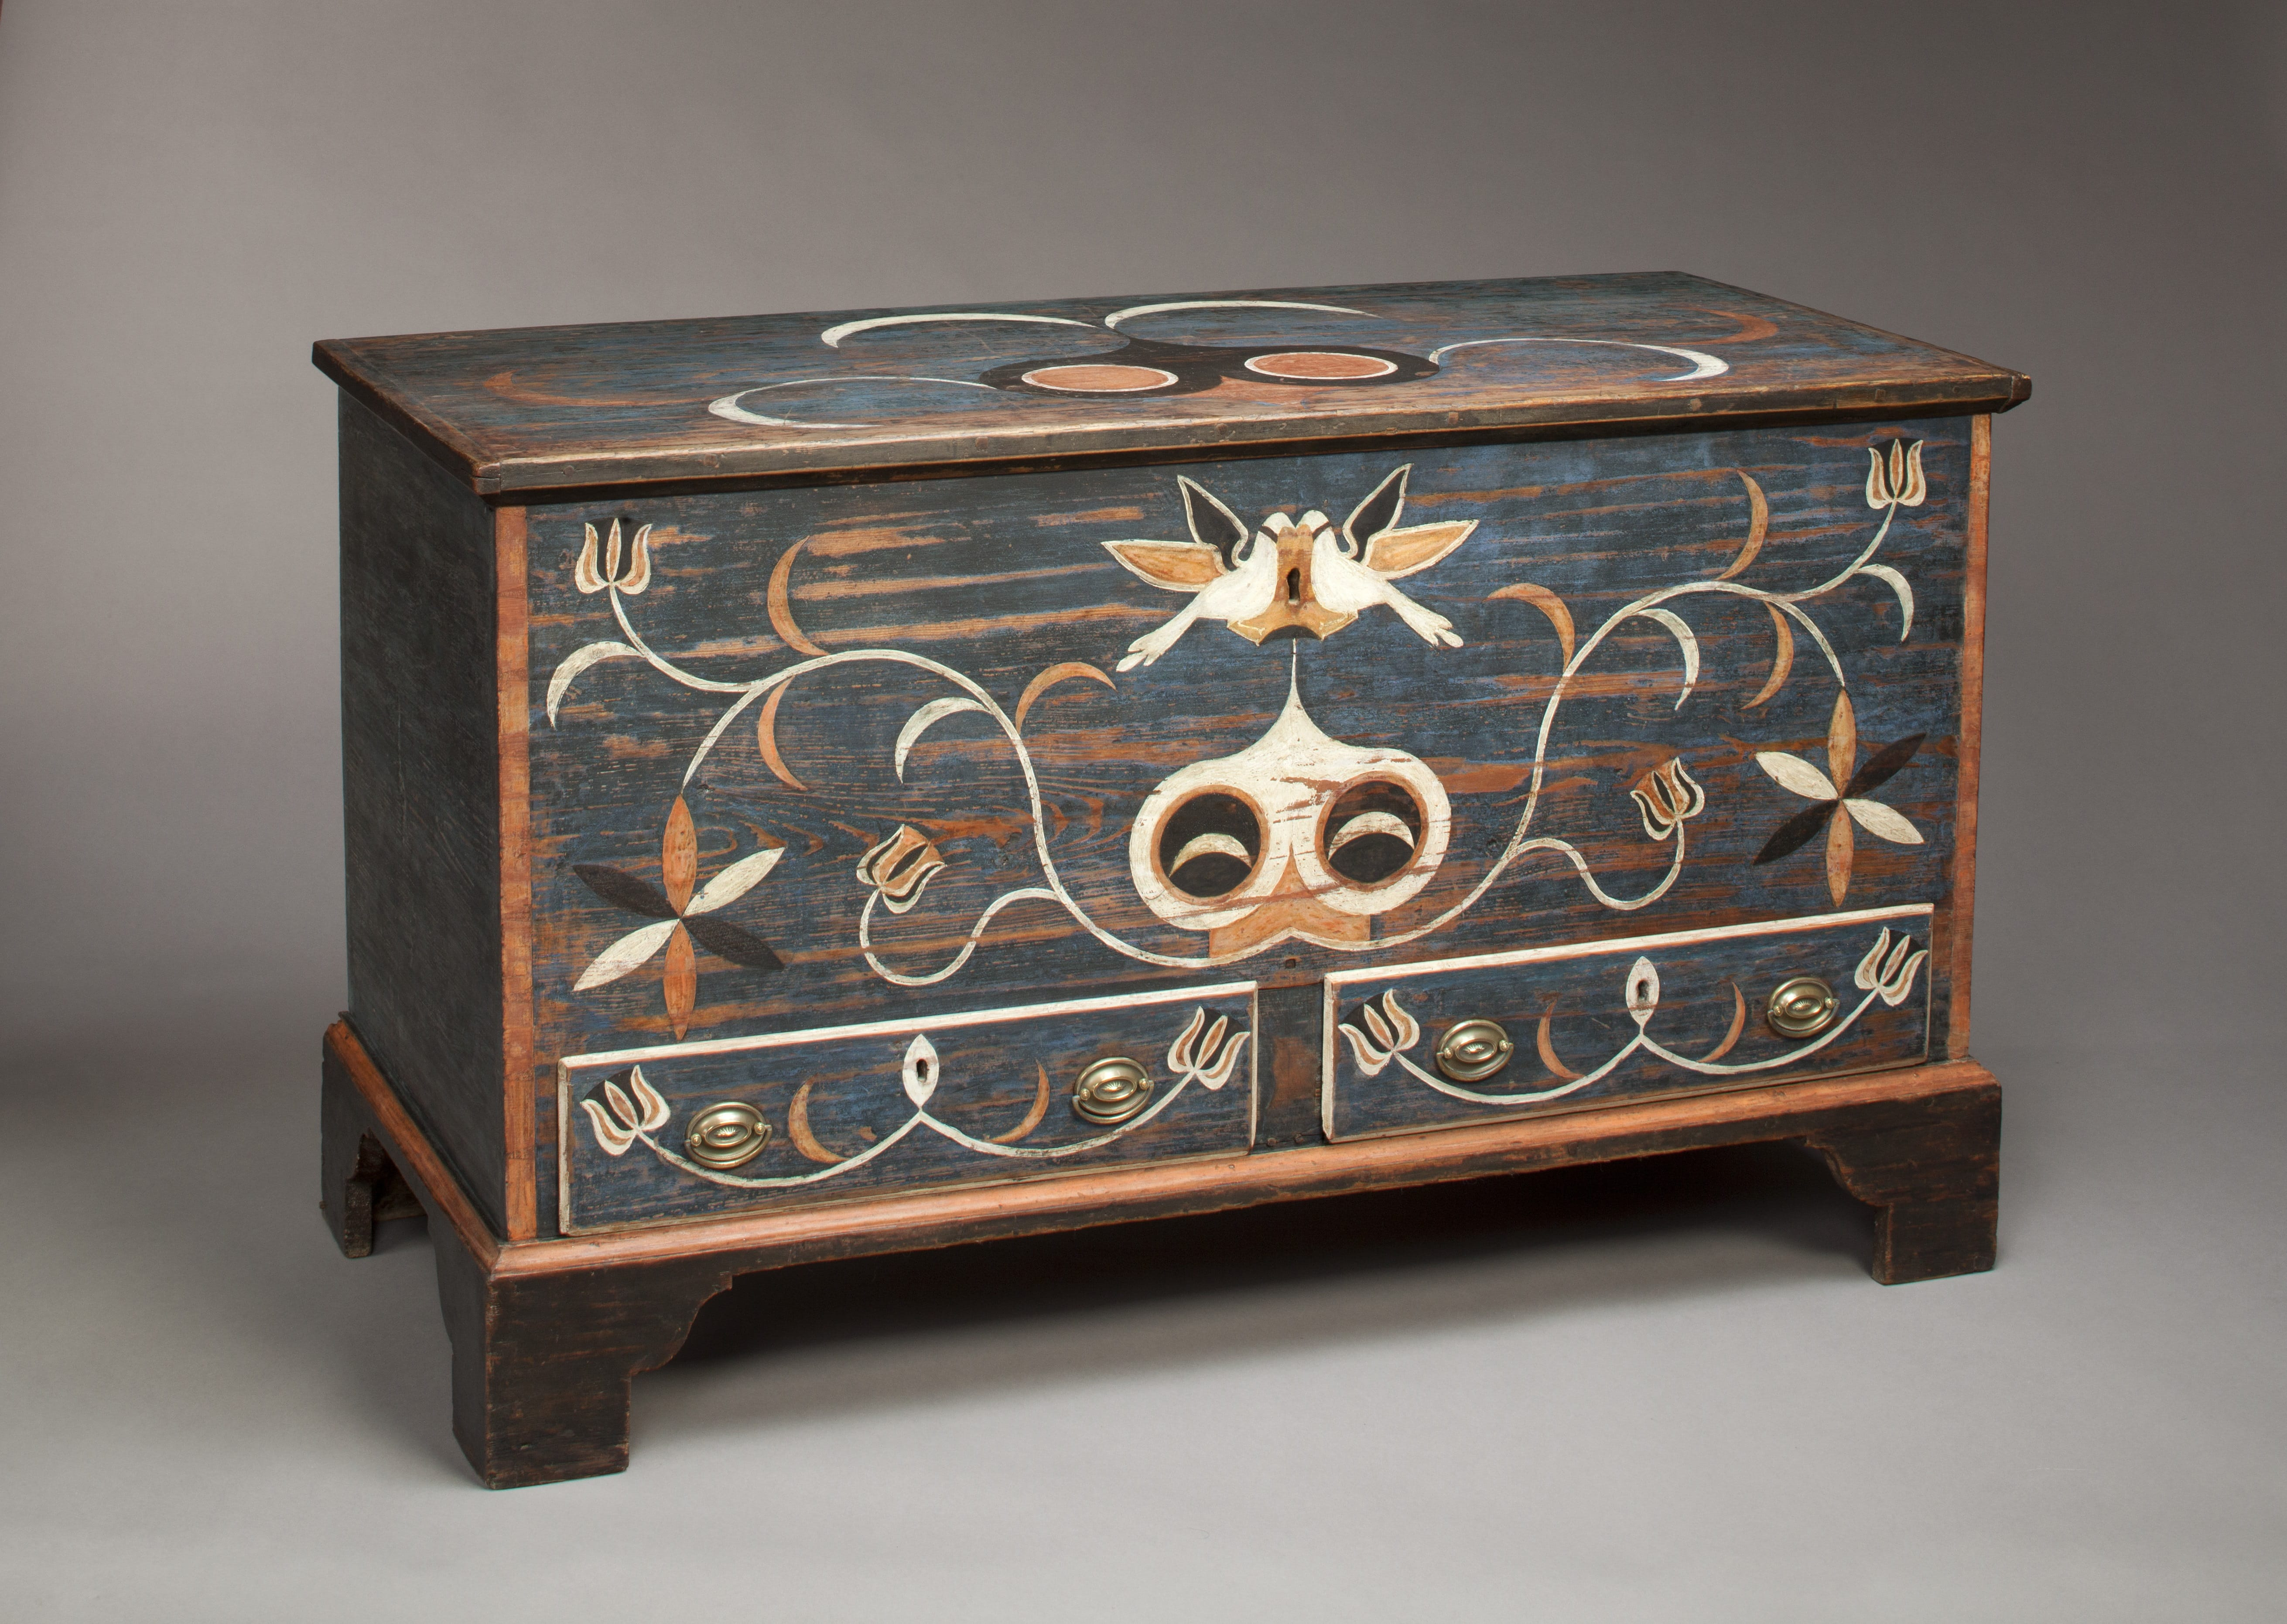 Shenandoah S Page Valley Style The Painted Furniture Of John Spitler 1790 1806 Wilton House Museum